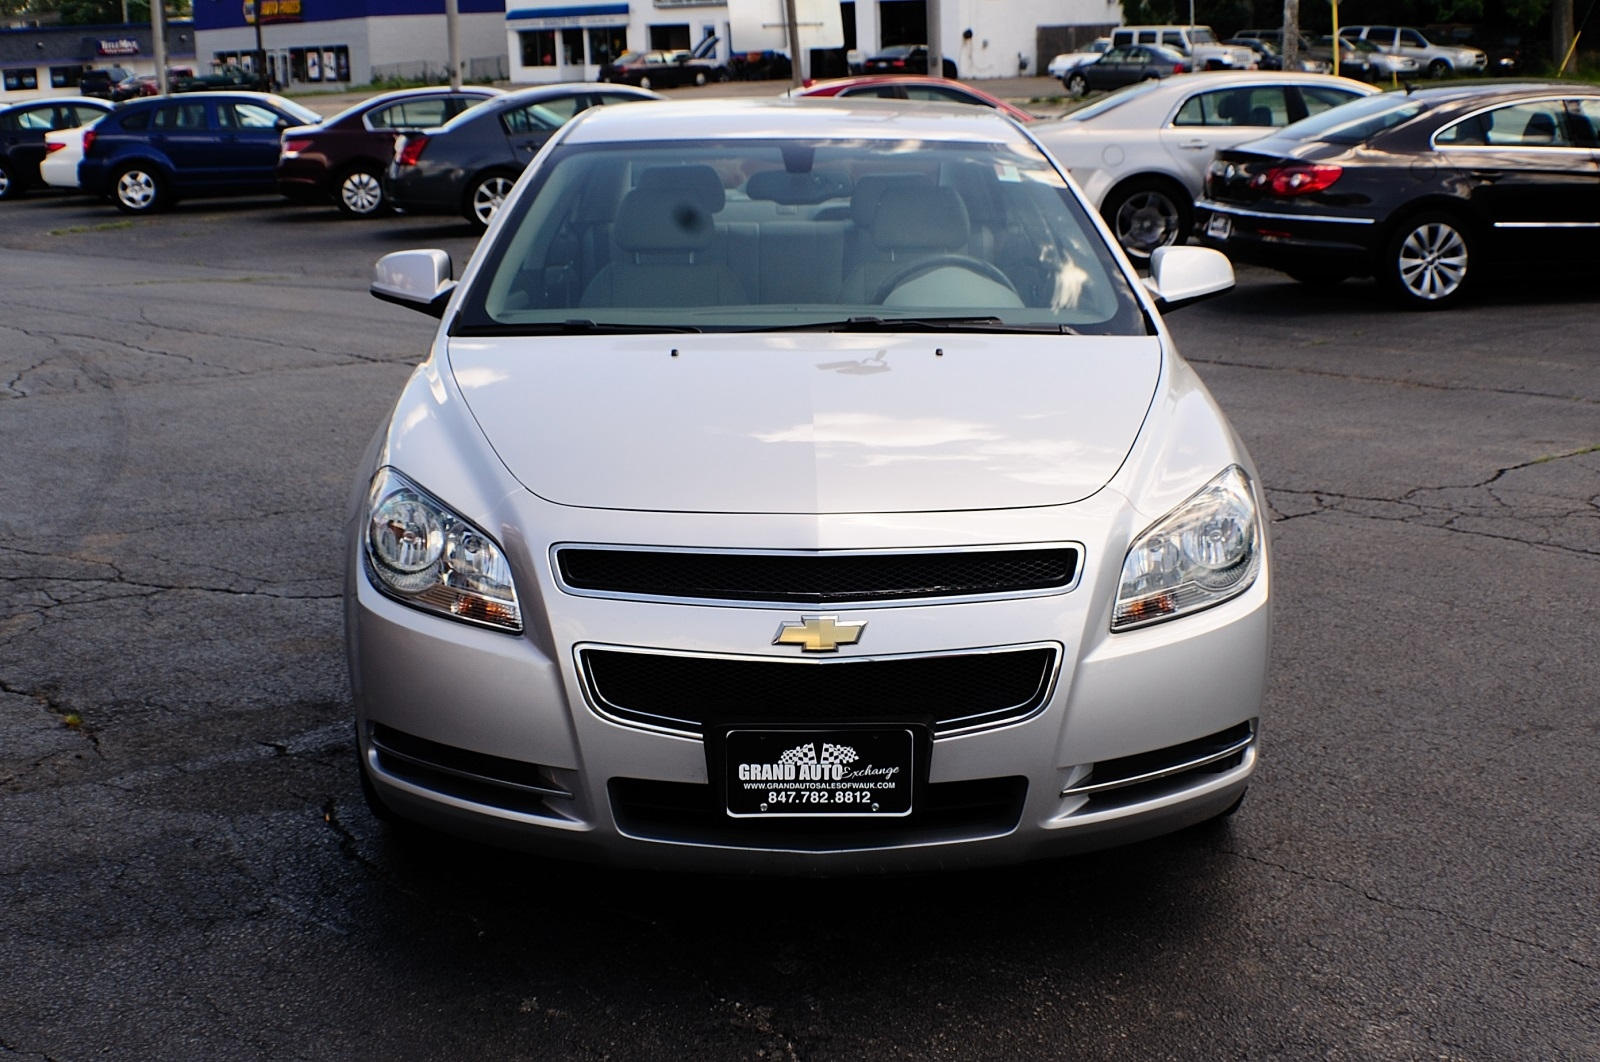 2009 Chevrolet Malibu LT Silver Sedan Used Car Sale Gurnee Kenosha Mchenry Chicago Illinois